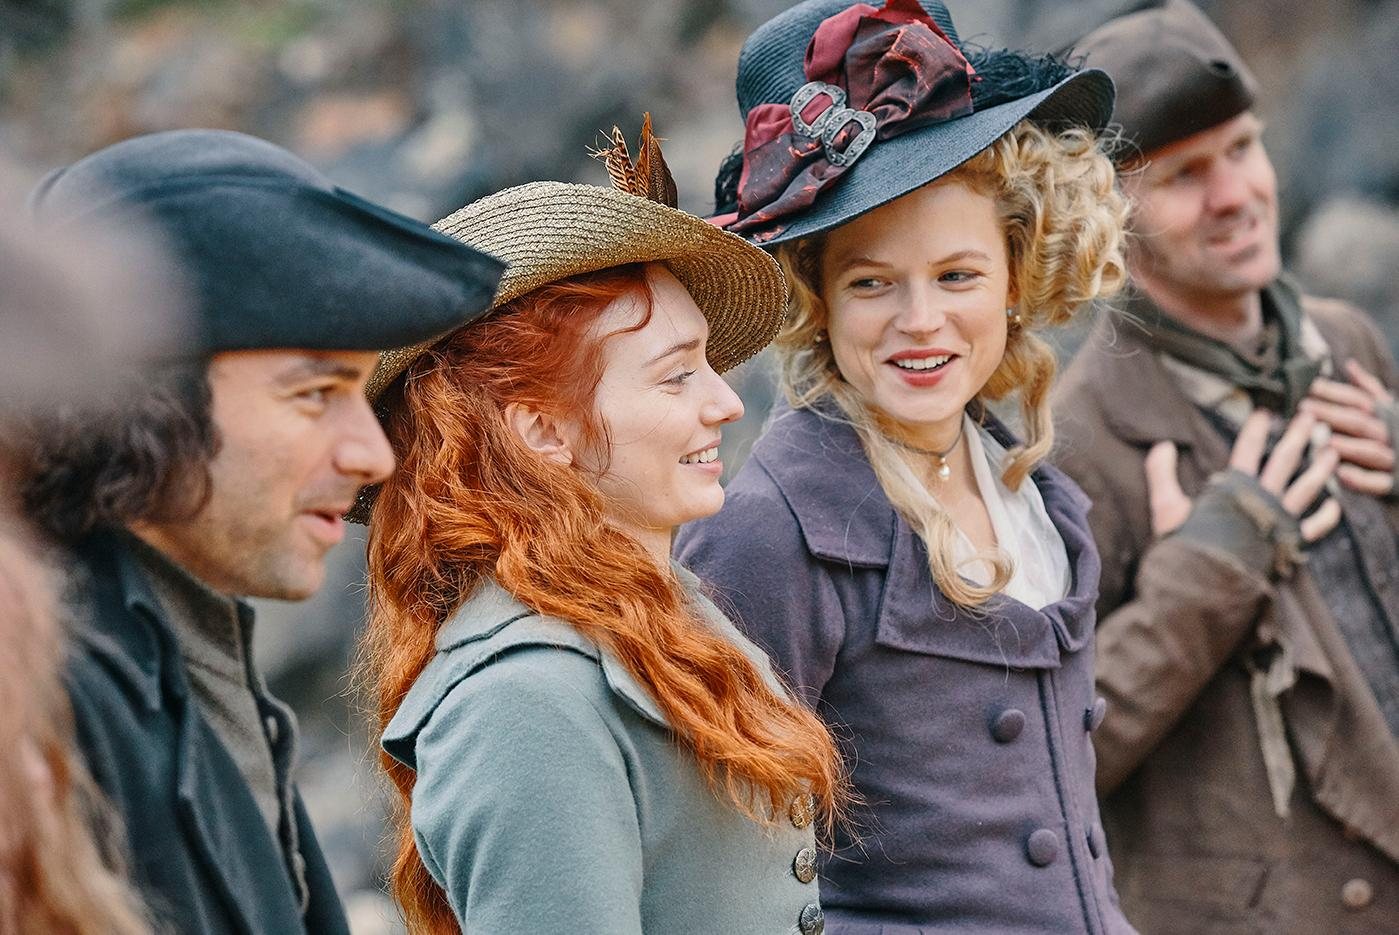 Aidan Turner as Ross, Gabriella Wilde as Caroline, and Eleanor Tomlinson as Demelza in Poldark. Photo: Mammoth Screen for BBC and MASTERPIECE